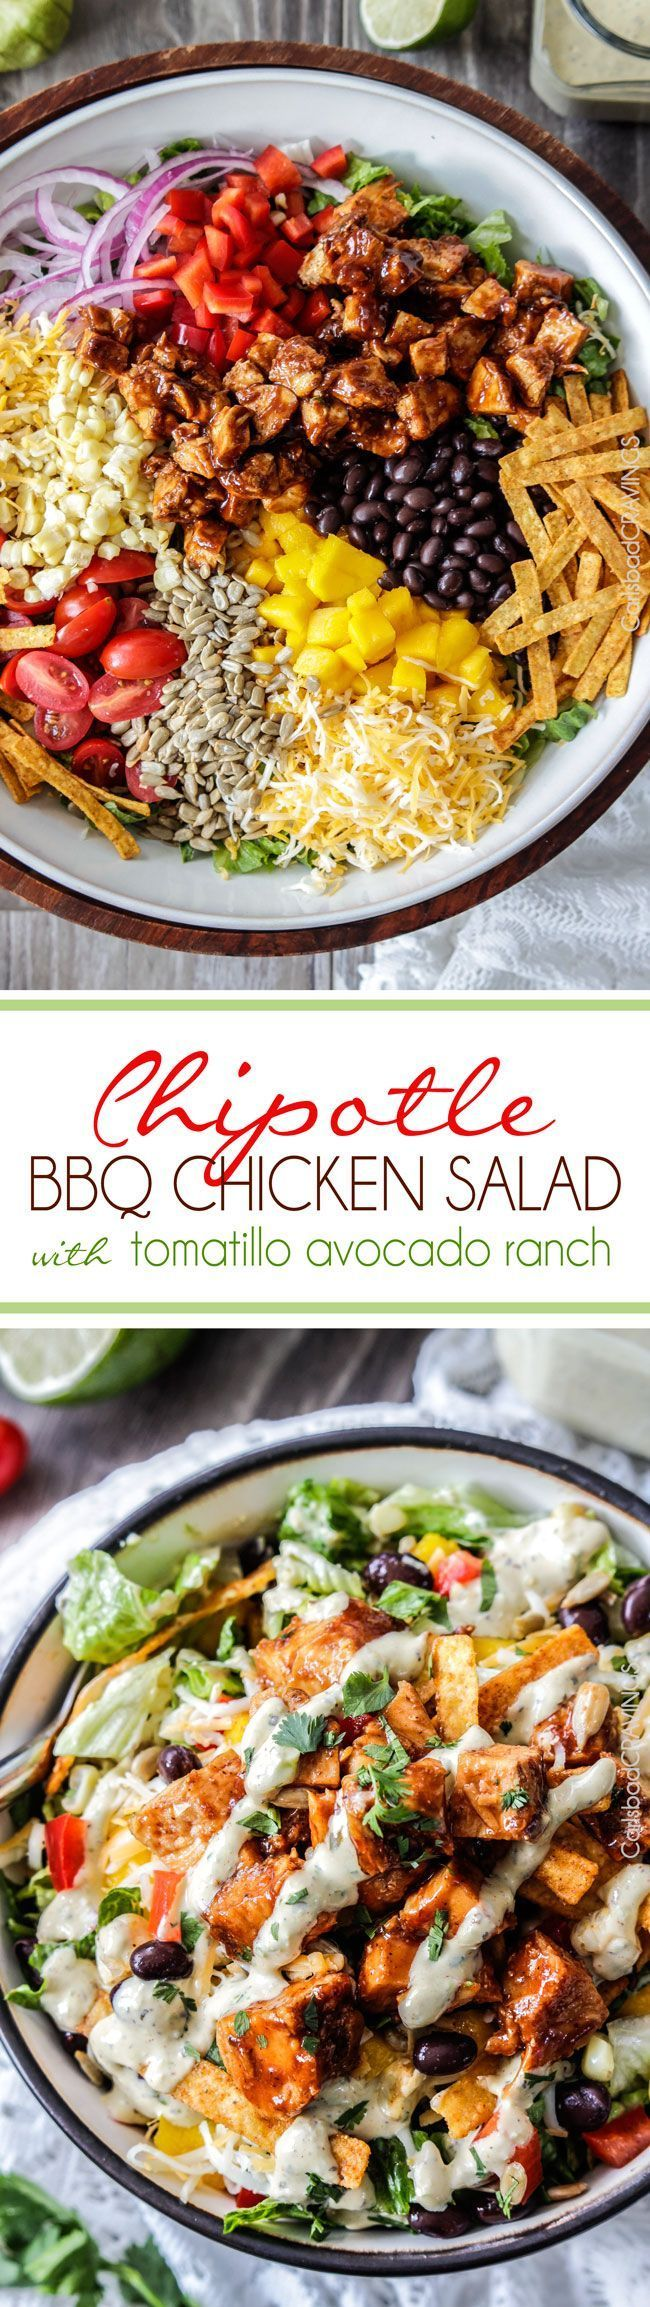 Chipotle BBQ Chicken Salad with 5 Minute Blender Tomatillo Avocado Ranch Dressing is WAY Better than your favorite restaurant salad at a fraction of the cost packed with crunchy veggies, crispy tortilla strips, tender barbecue chicken and the most intoxic